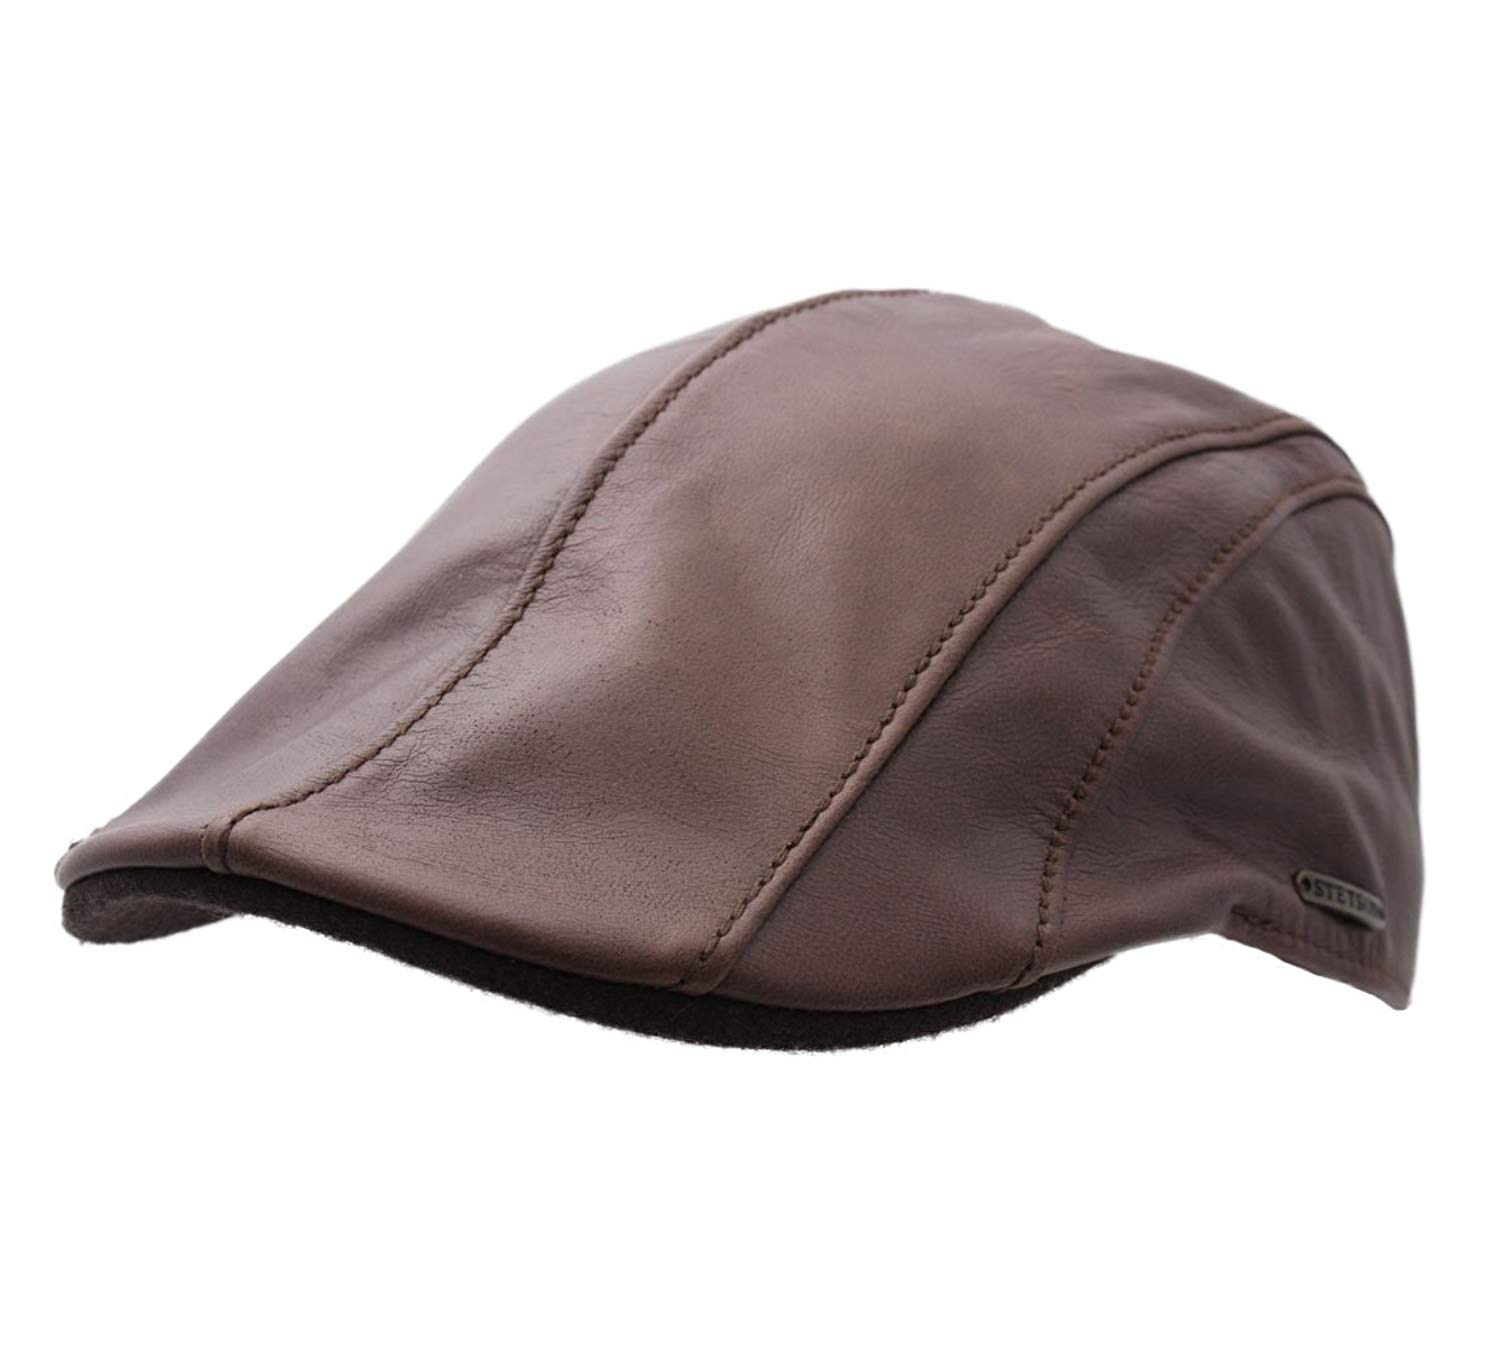 f024f2dd708 Buy Stetson Manatee Goatskin Leather Duckbill Flat Cap in Cheap ...